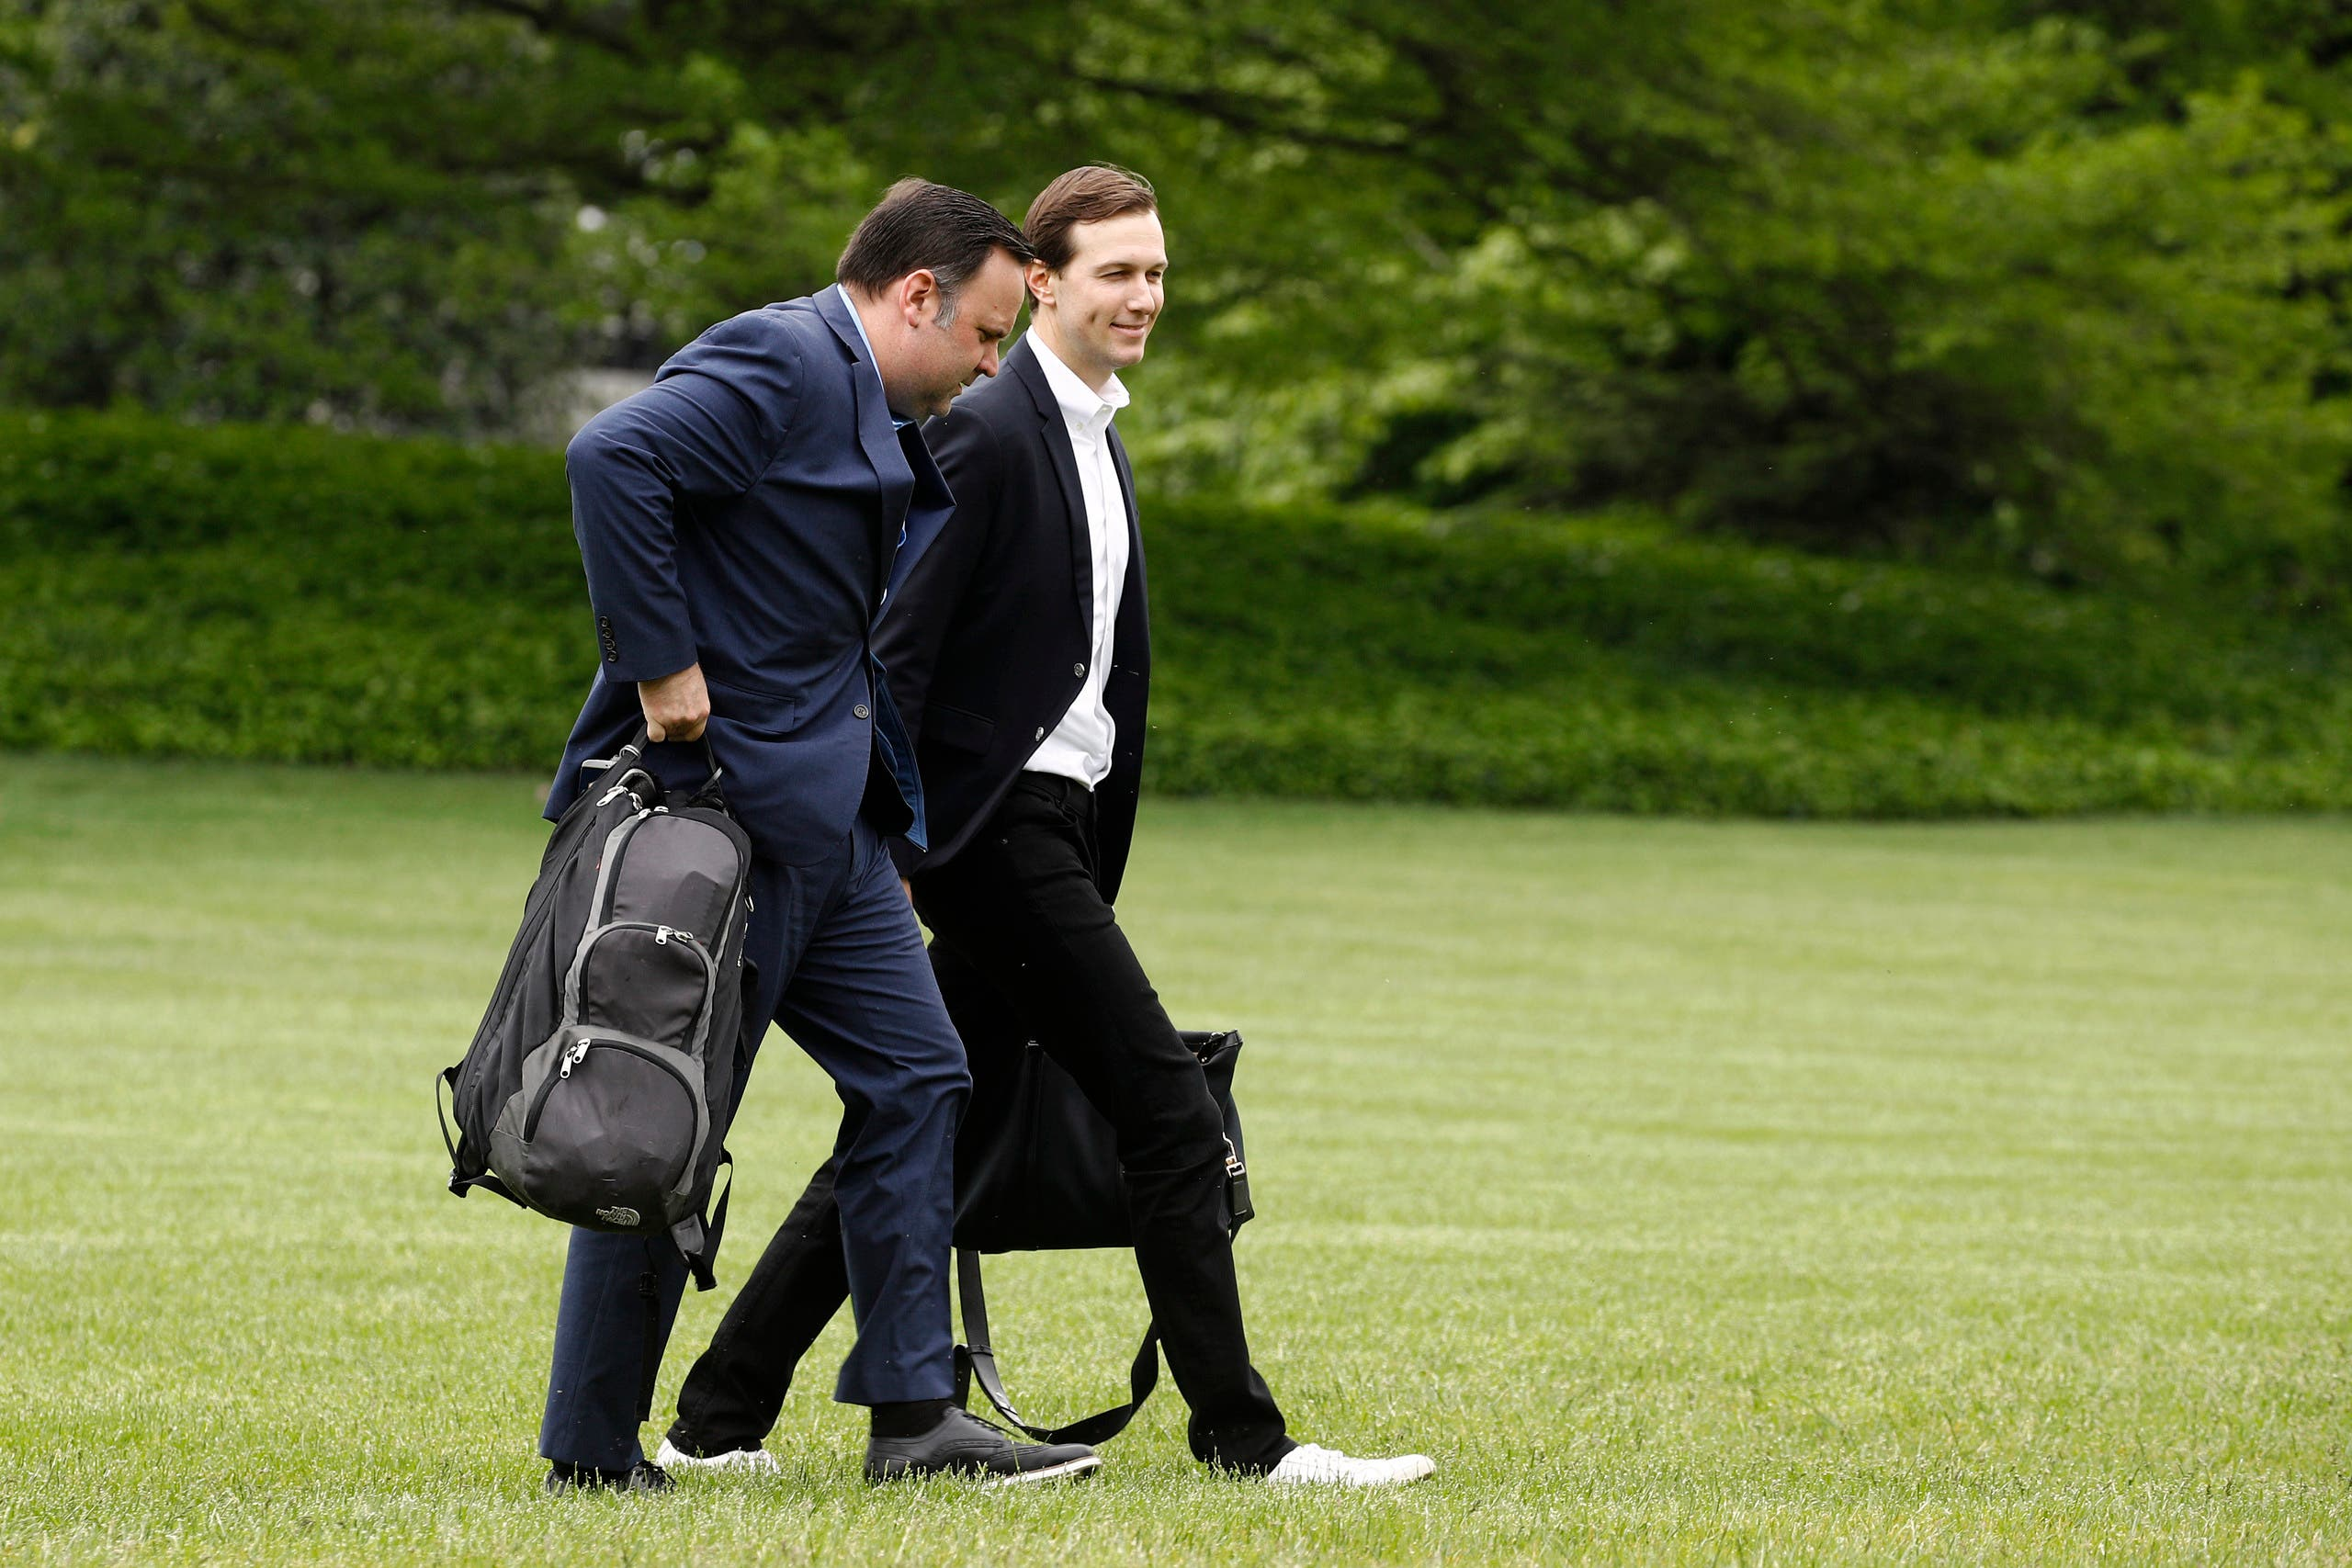 White House Social Media Director Dan Scavino, left, and President Donald Trump's White House Senior Adviser Jared Kushner walk on the South Lawn of the White House after stepping off Marine One with President Trump, Sunday, May 3, 2020, in Washington.  (AP)